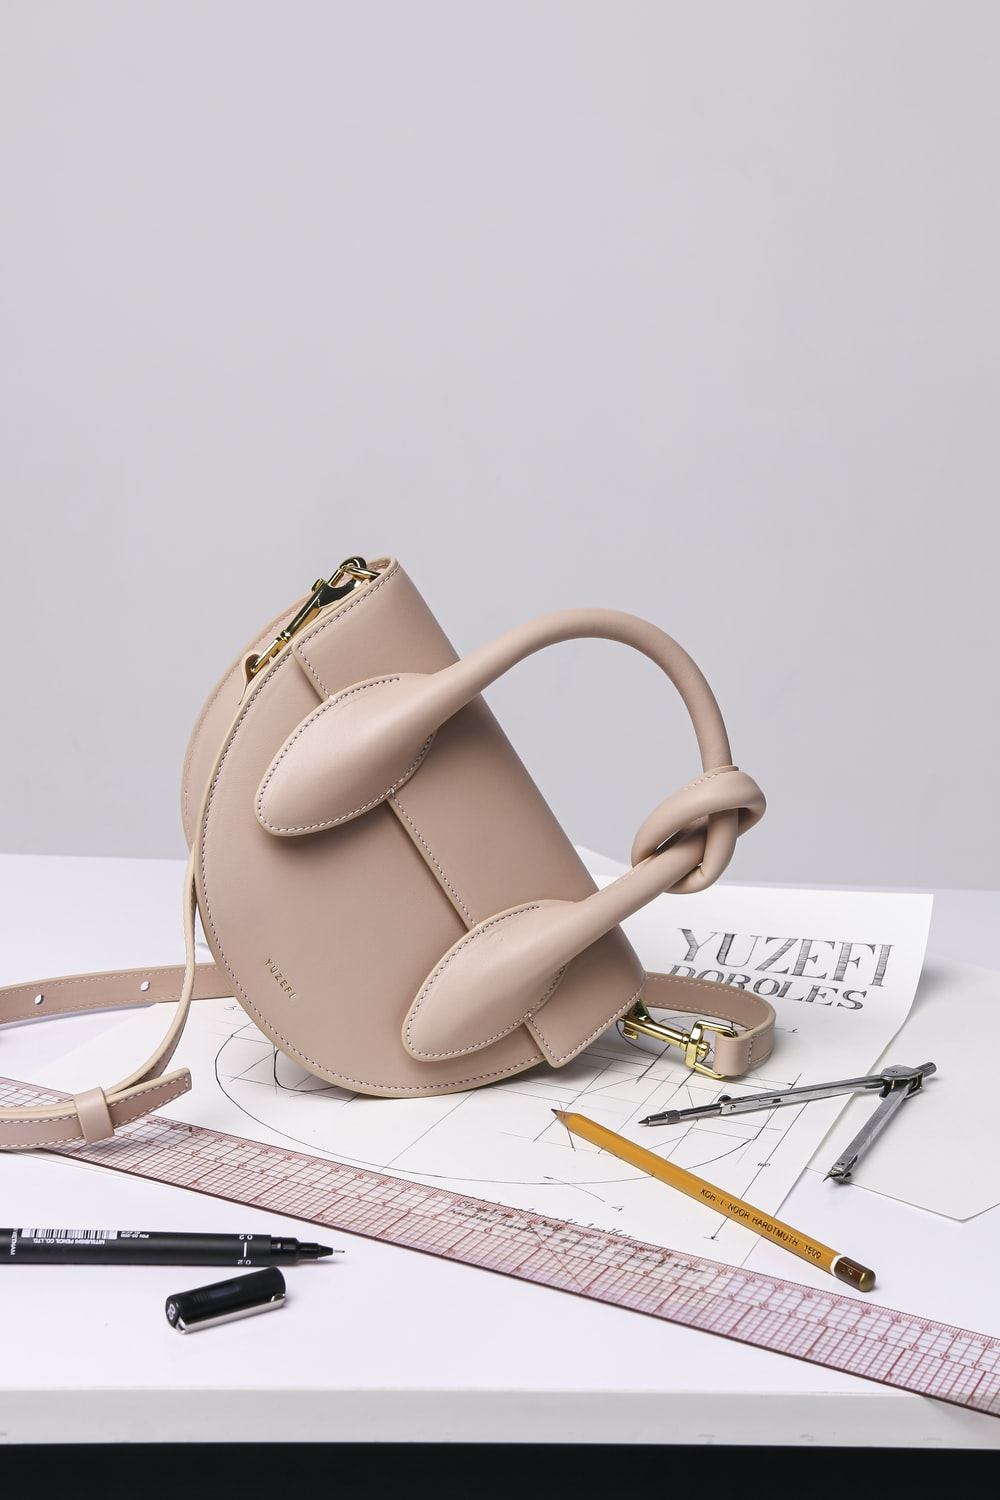 brown leather handbag on white ruled paper